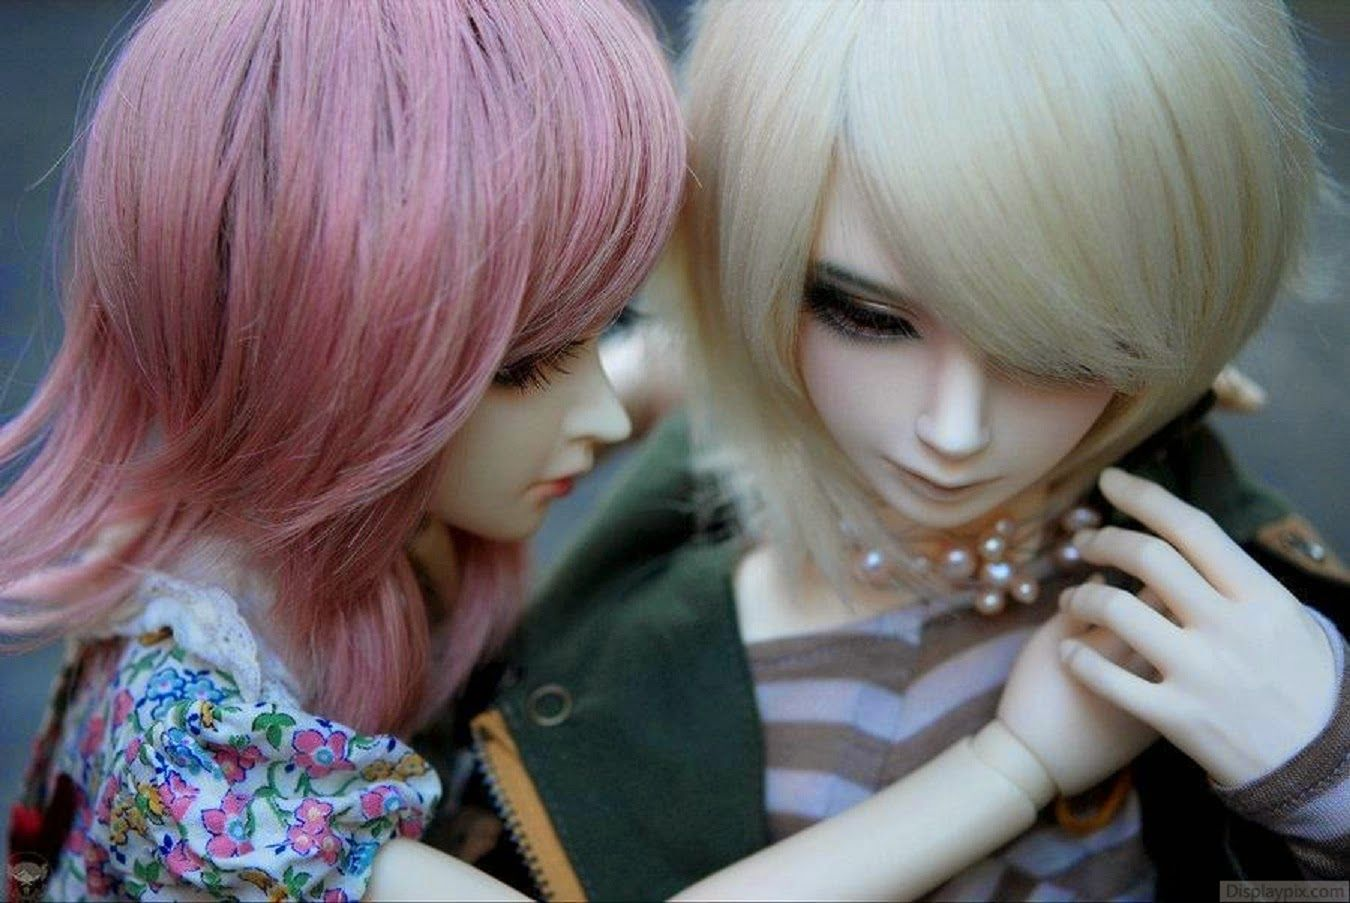 Love Wallpaper With Doll : all 4u wallpaper: Beautiful And cute Dolls Images HD Wallpaper Dolls Pinterest Doll images ...